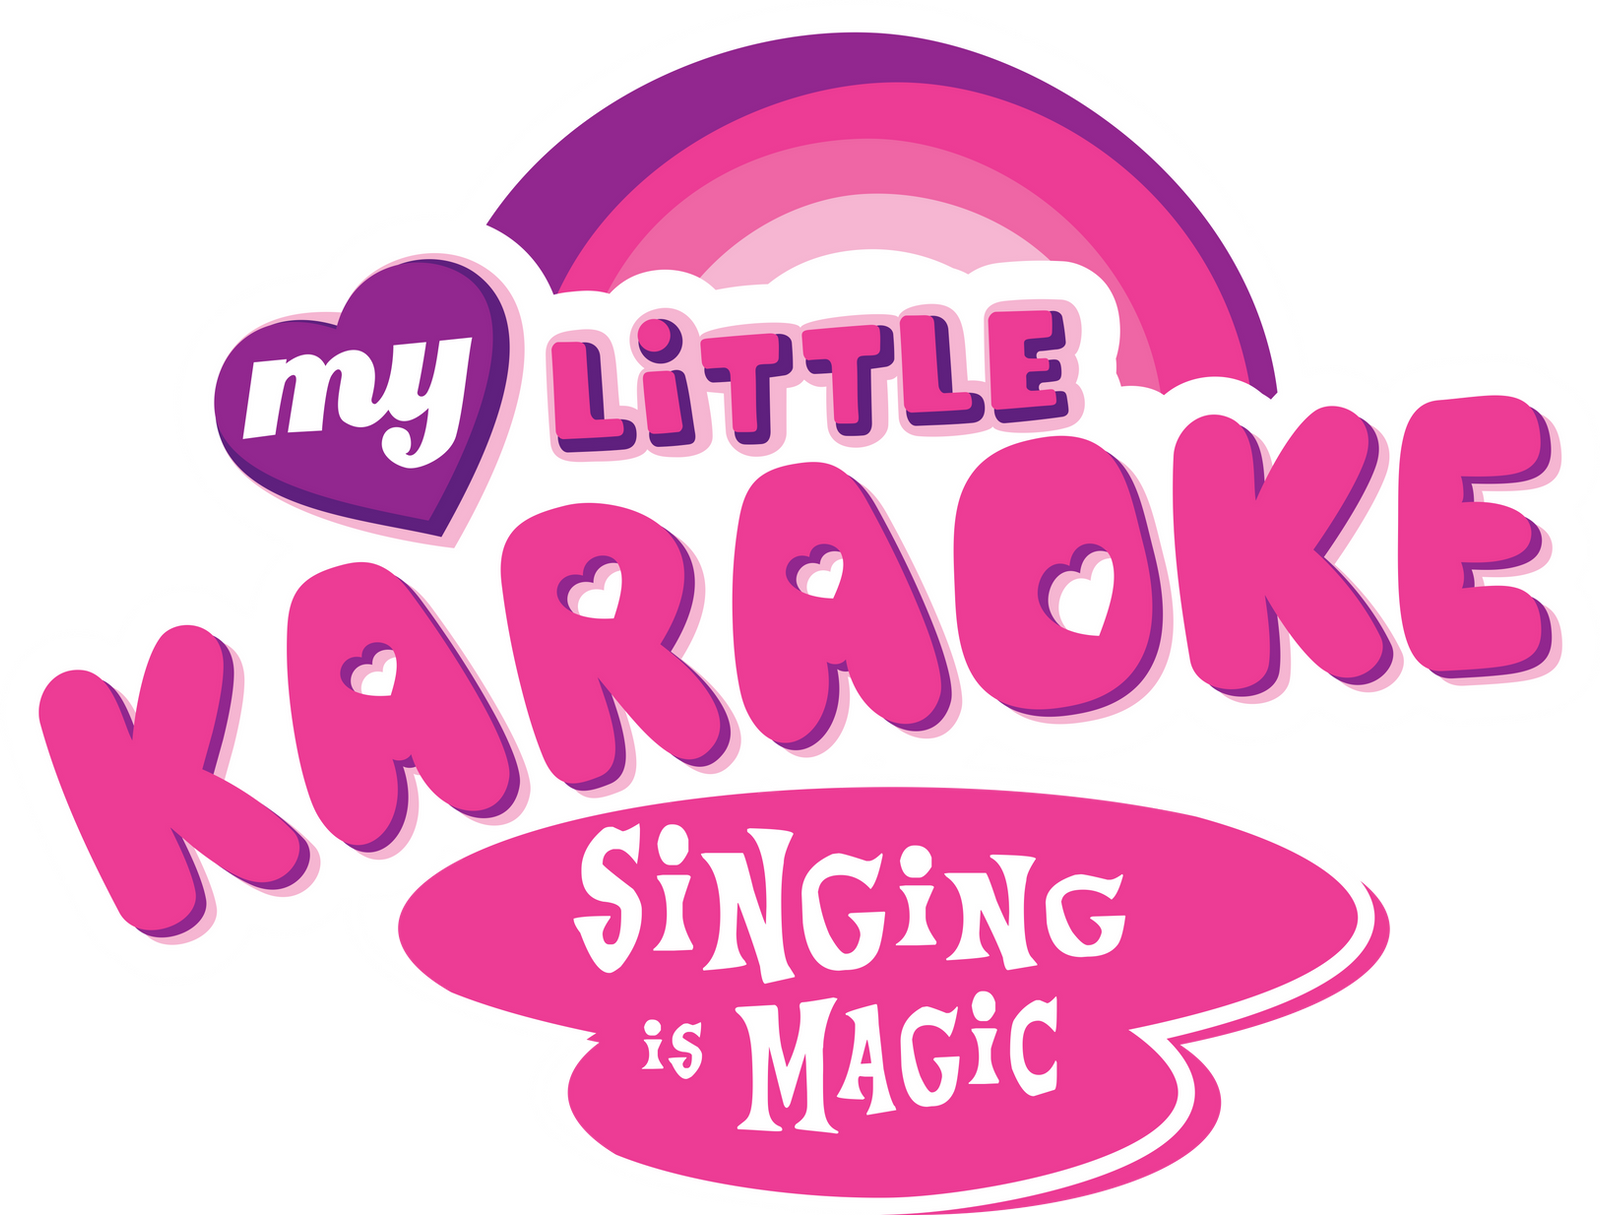 My Little Karaoke Logo By Psychicwalnut On Deviantart